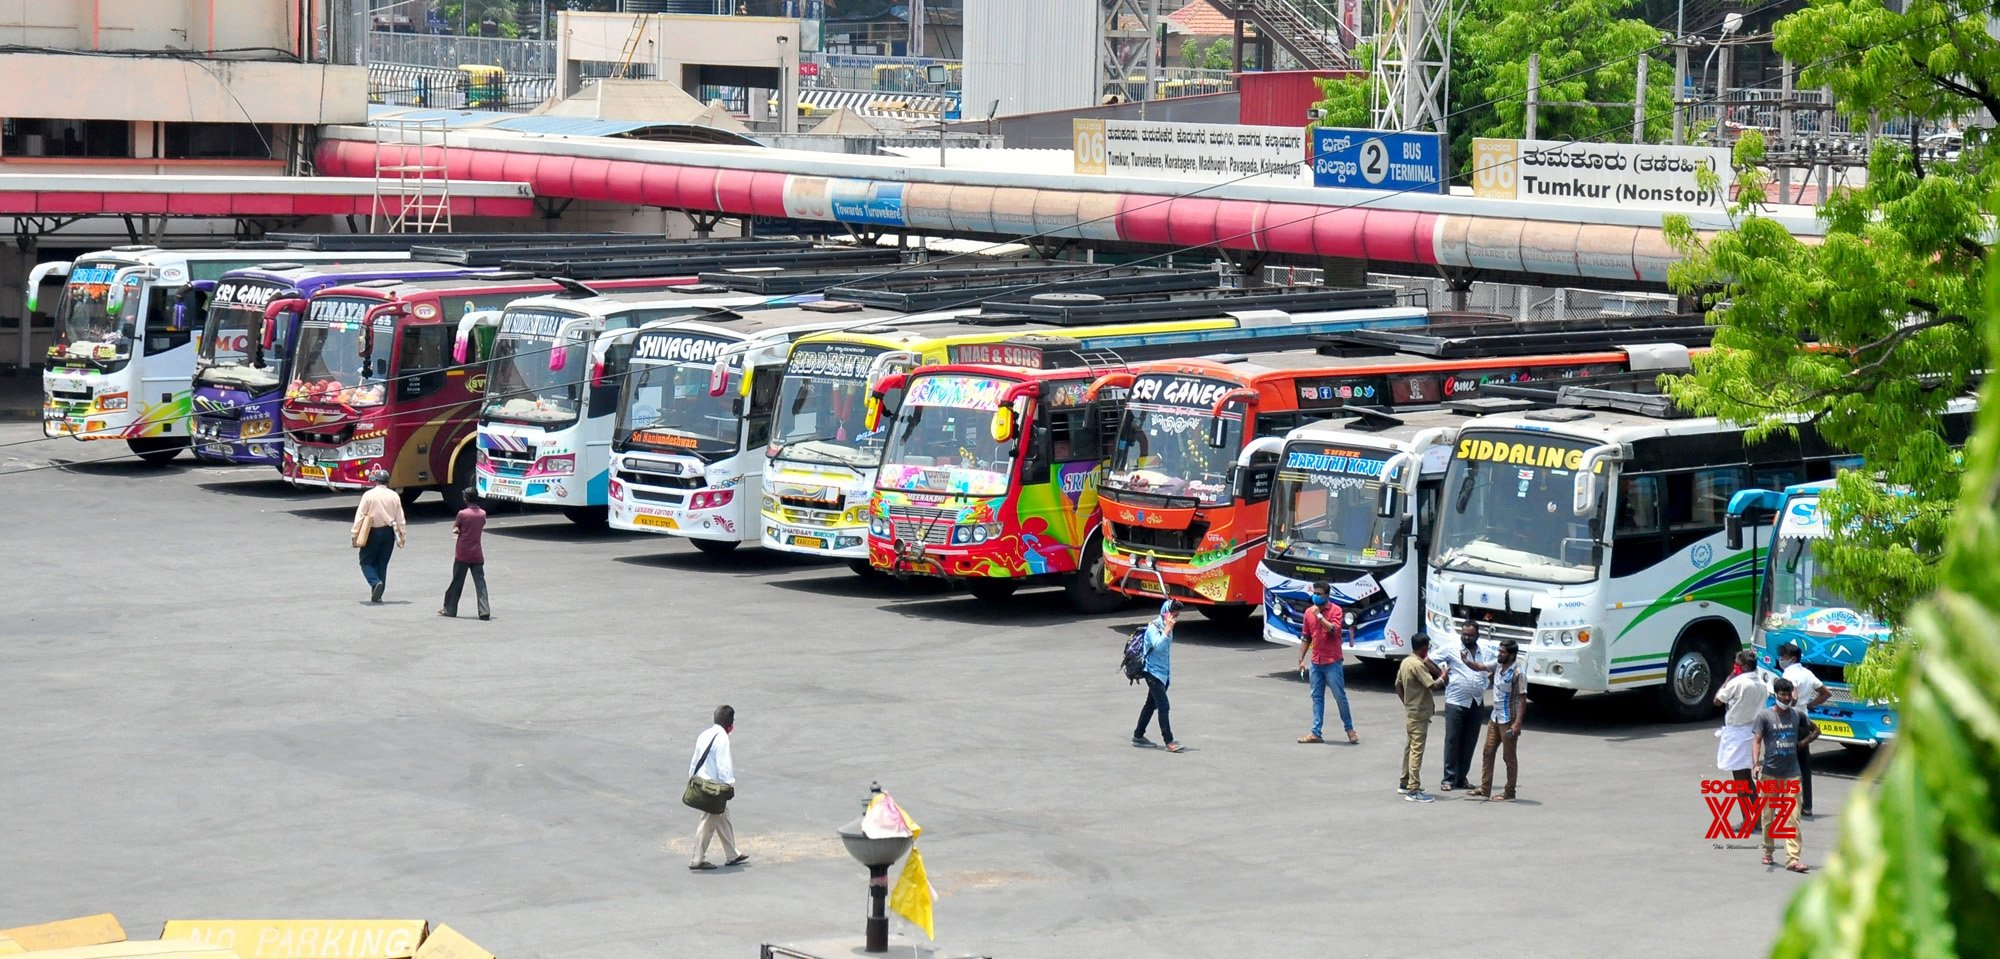 Bengaluru: BMTC busses being parked at Yeshwanthpur bus terminal during the BMTC and KSRTC bus workers indefinite strike in Bengaluru on Thursday 8th April 2021. #Gallery